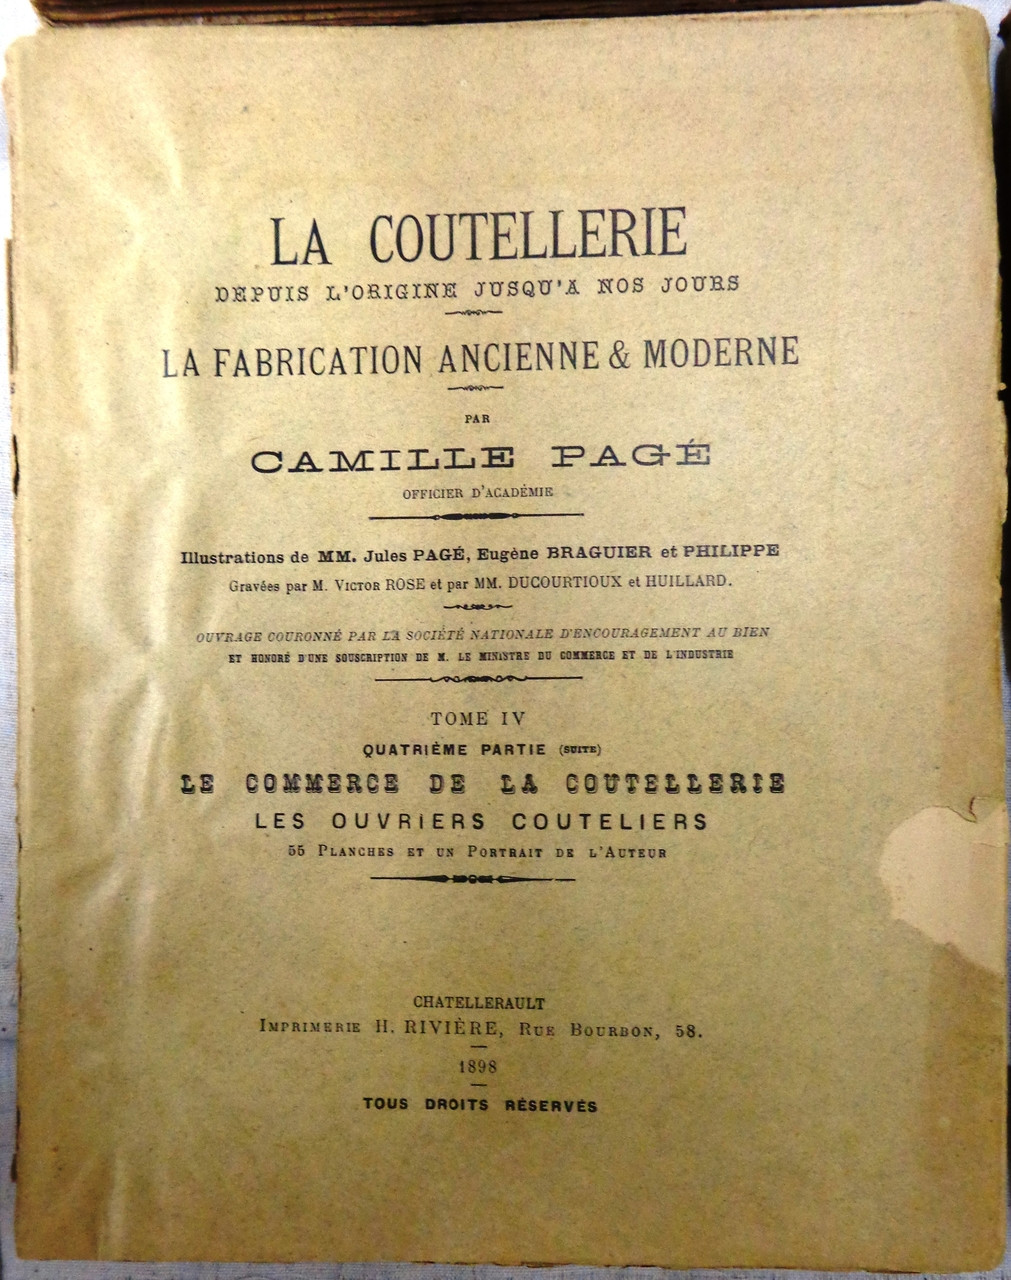 La Coutellerie by Camille Page - 6 Volume Set - 1896 to 1904